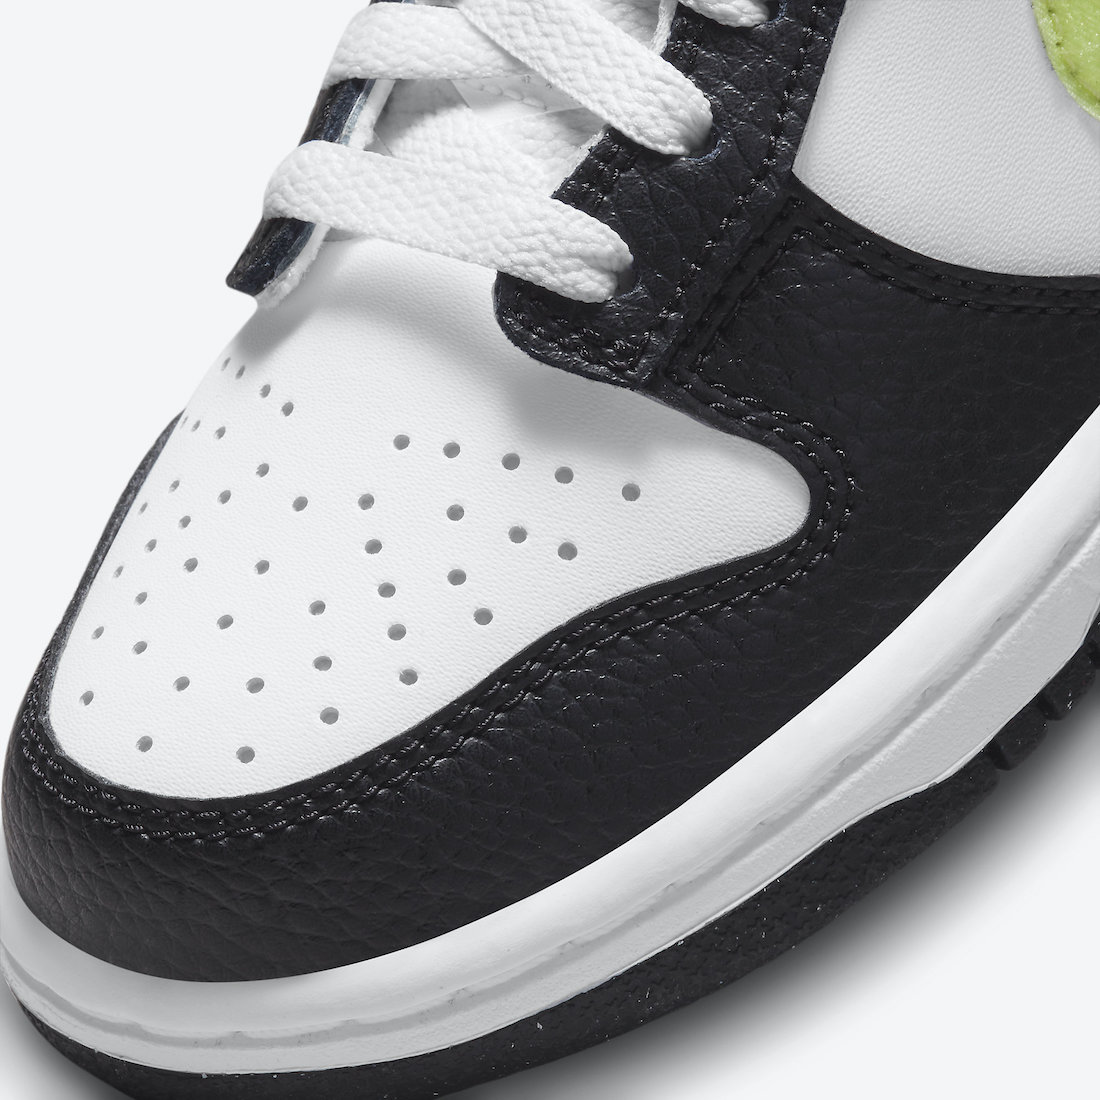 This Kids Nike Dunk Low Comes With Giant Hangtags